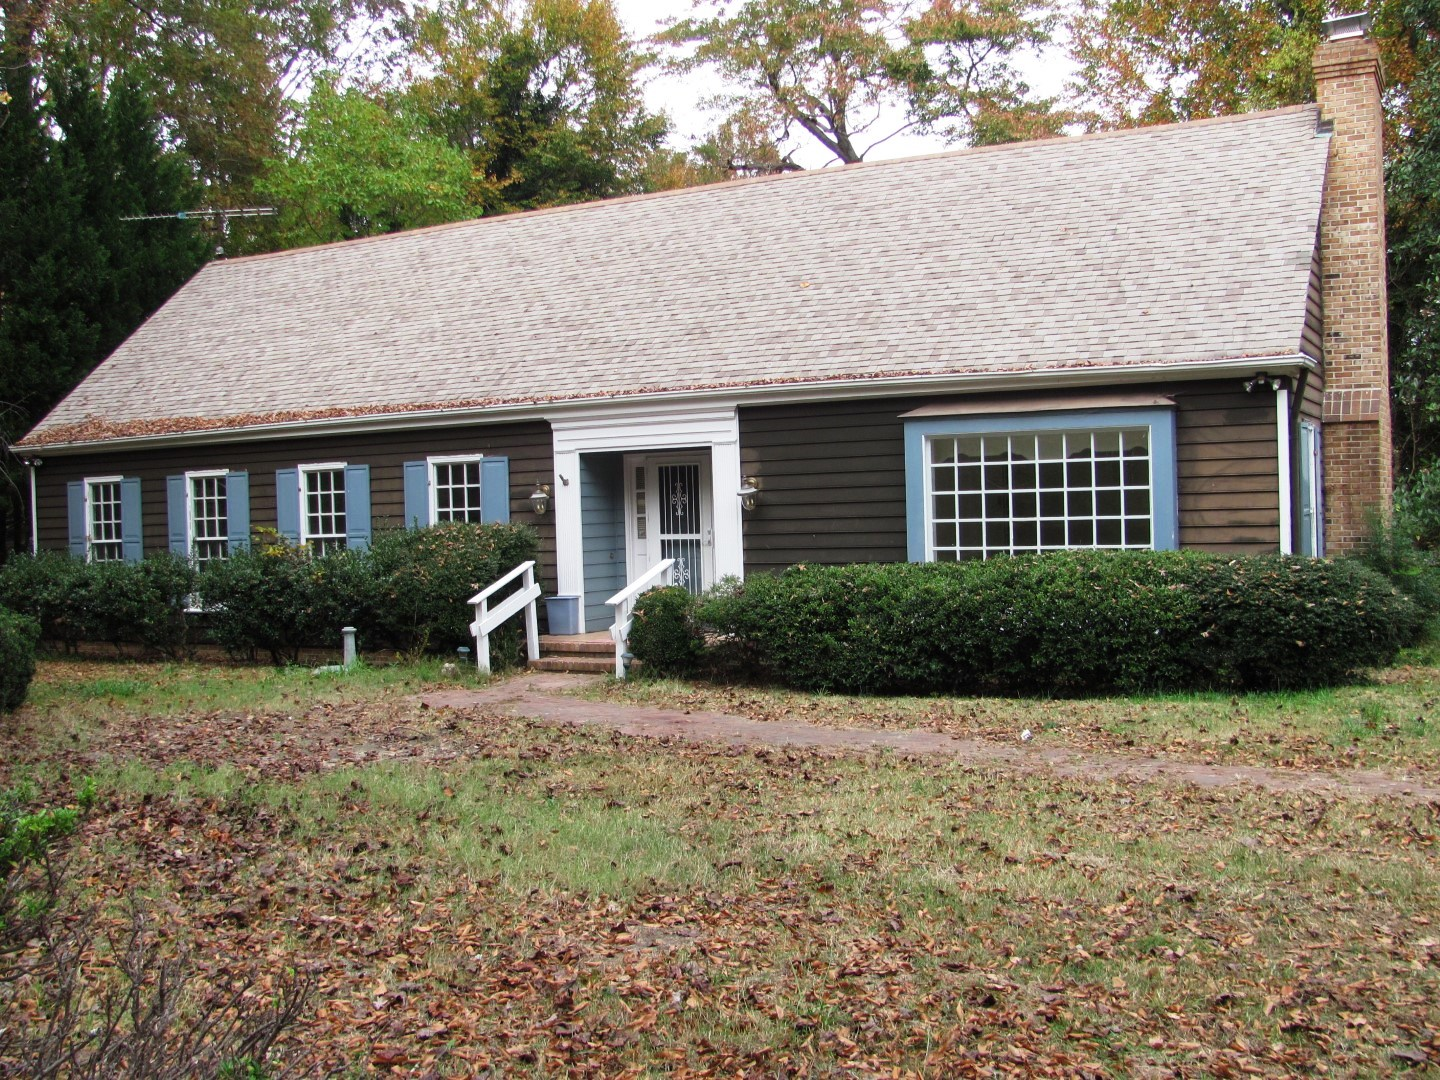 640 Tappahanna Hundred, Surry, Virginia 23883